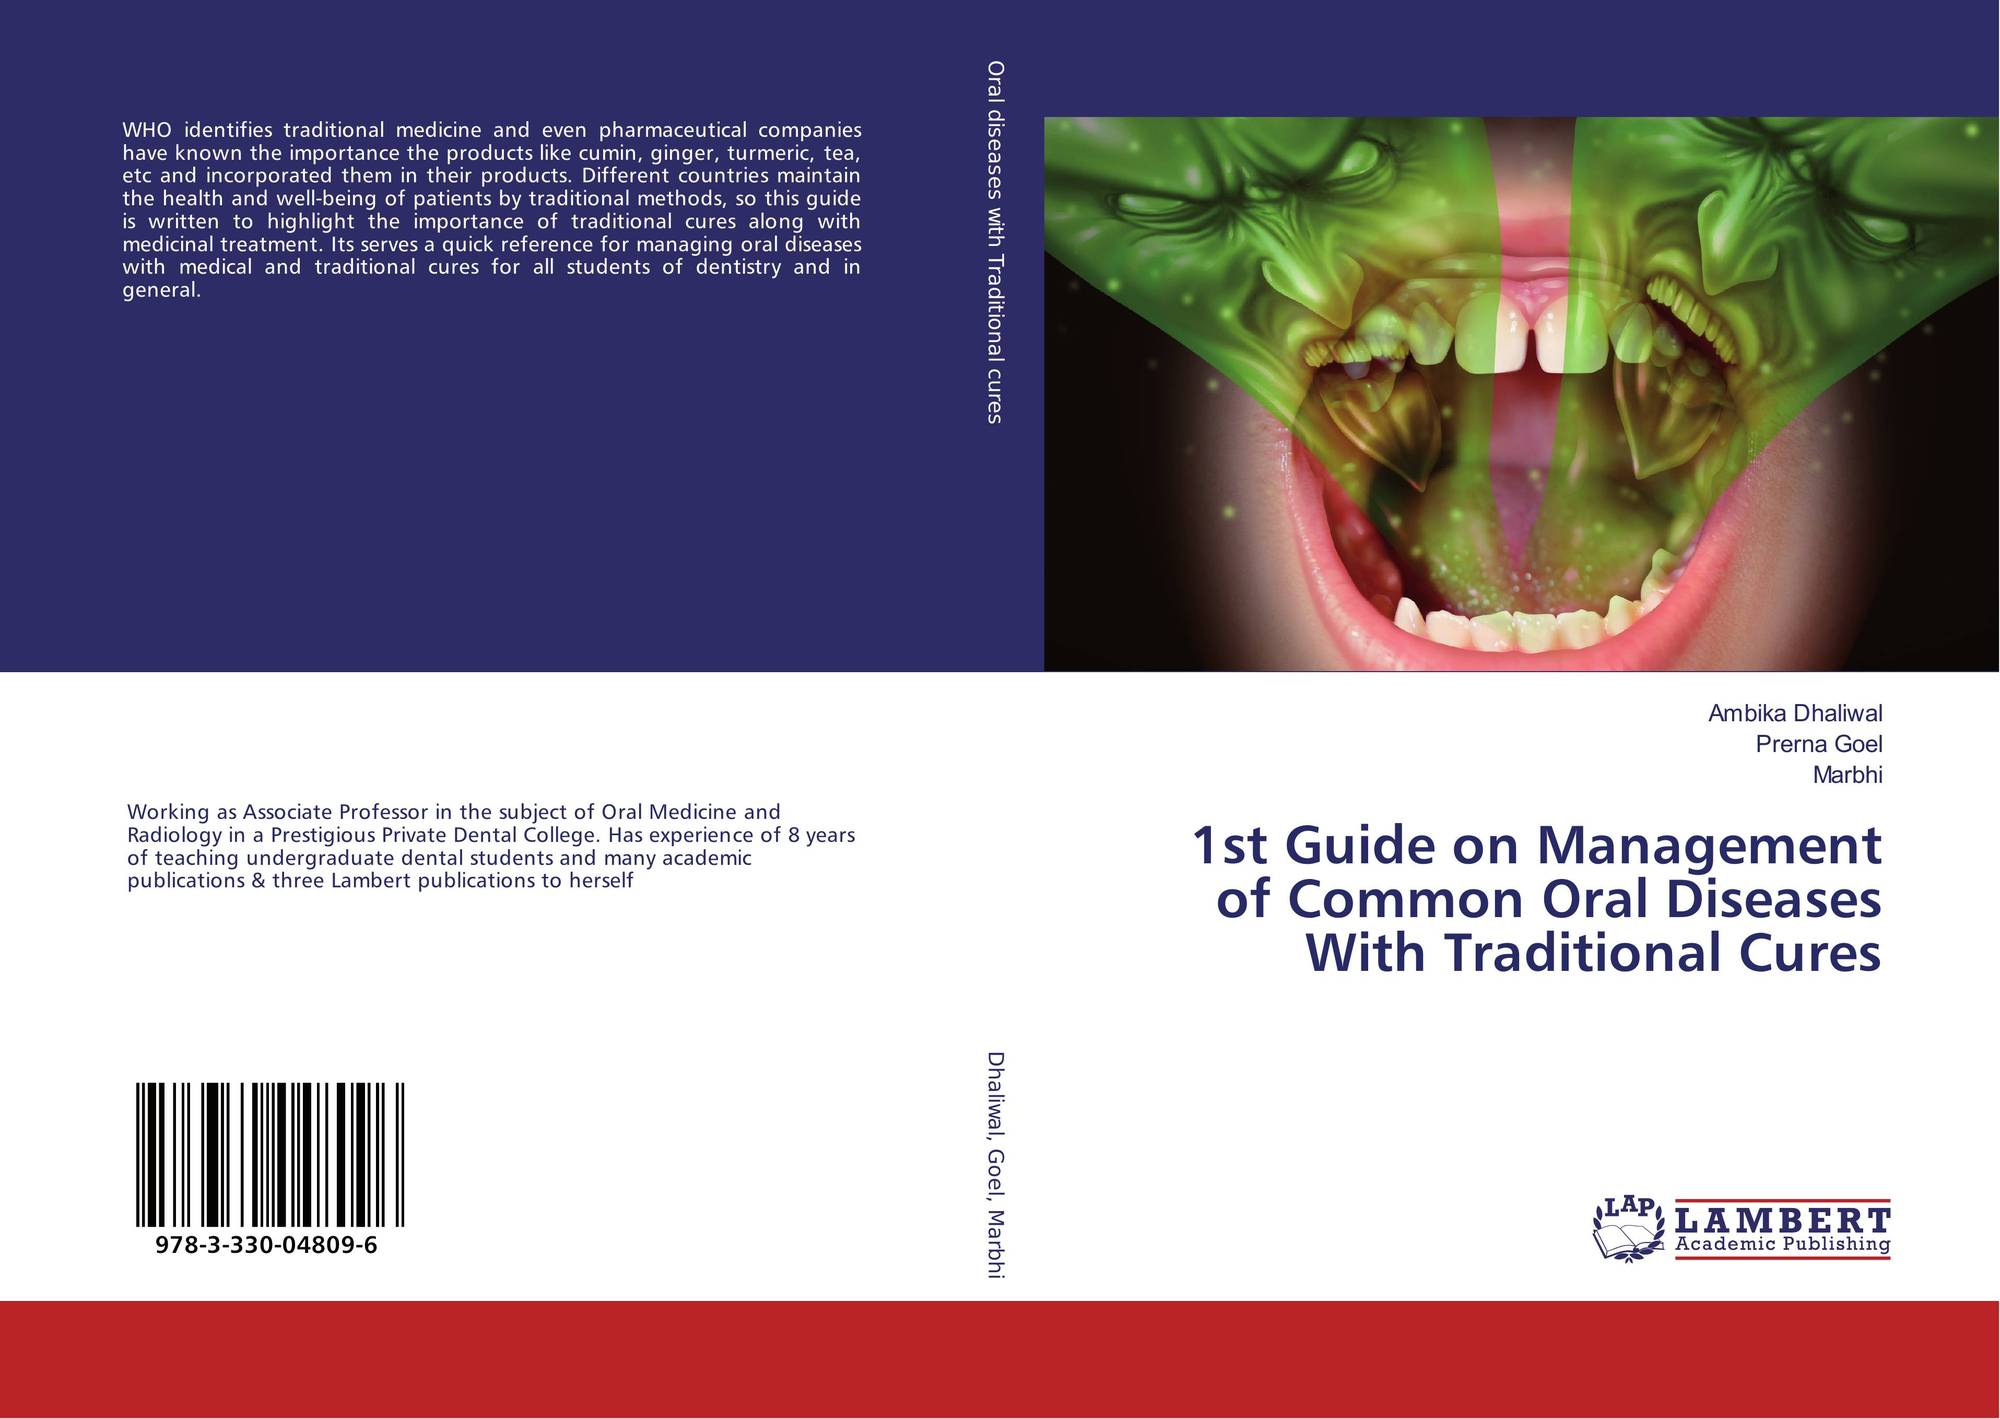 1st Guide on Management of Common Oral Diseases With